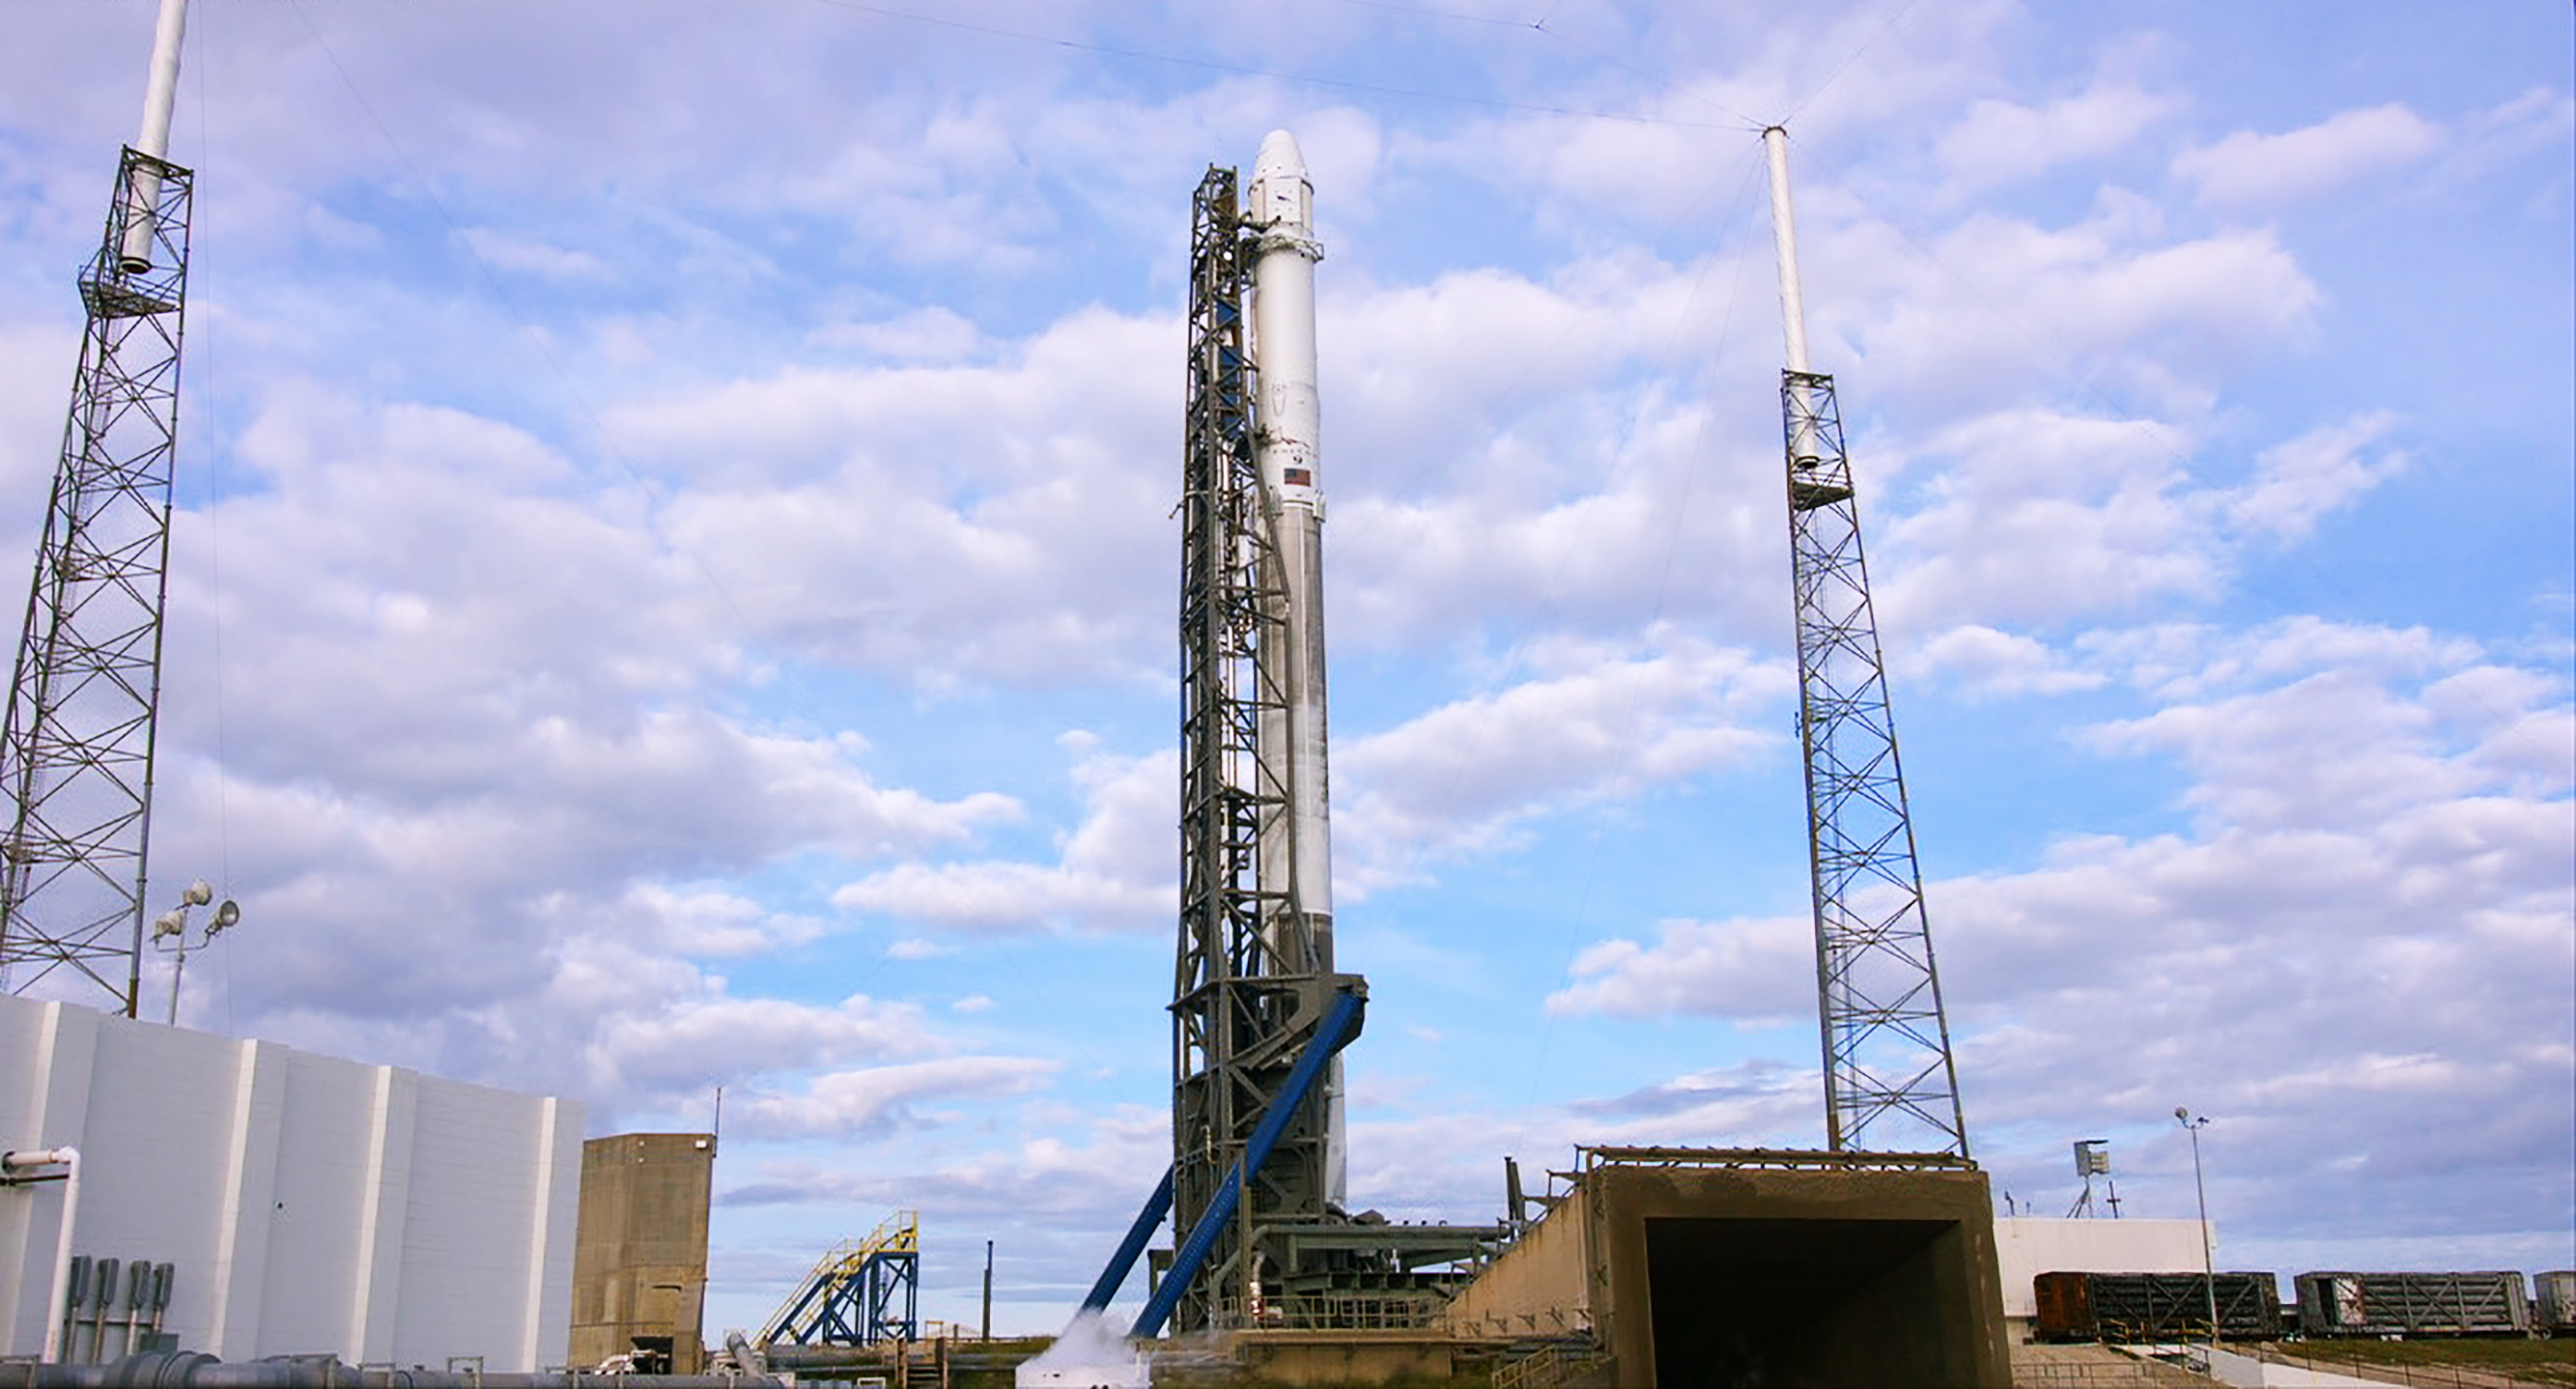 spacex falcon 9 and dragon spacecraft on the launch pad